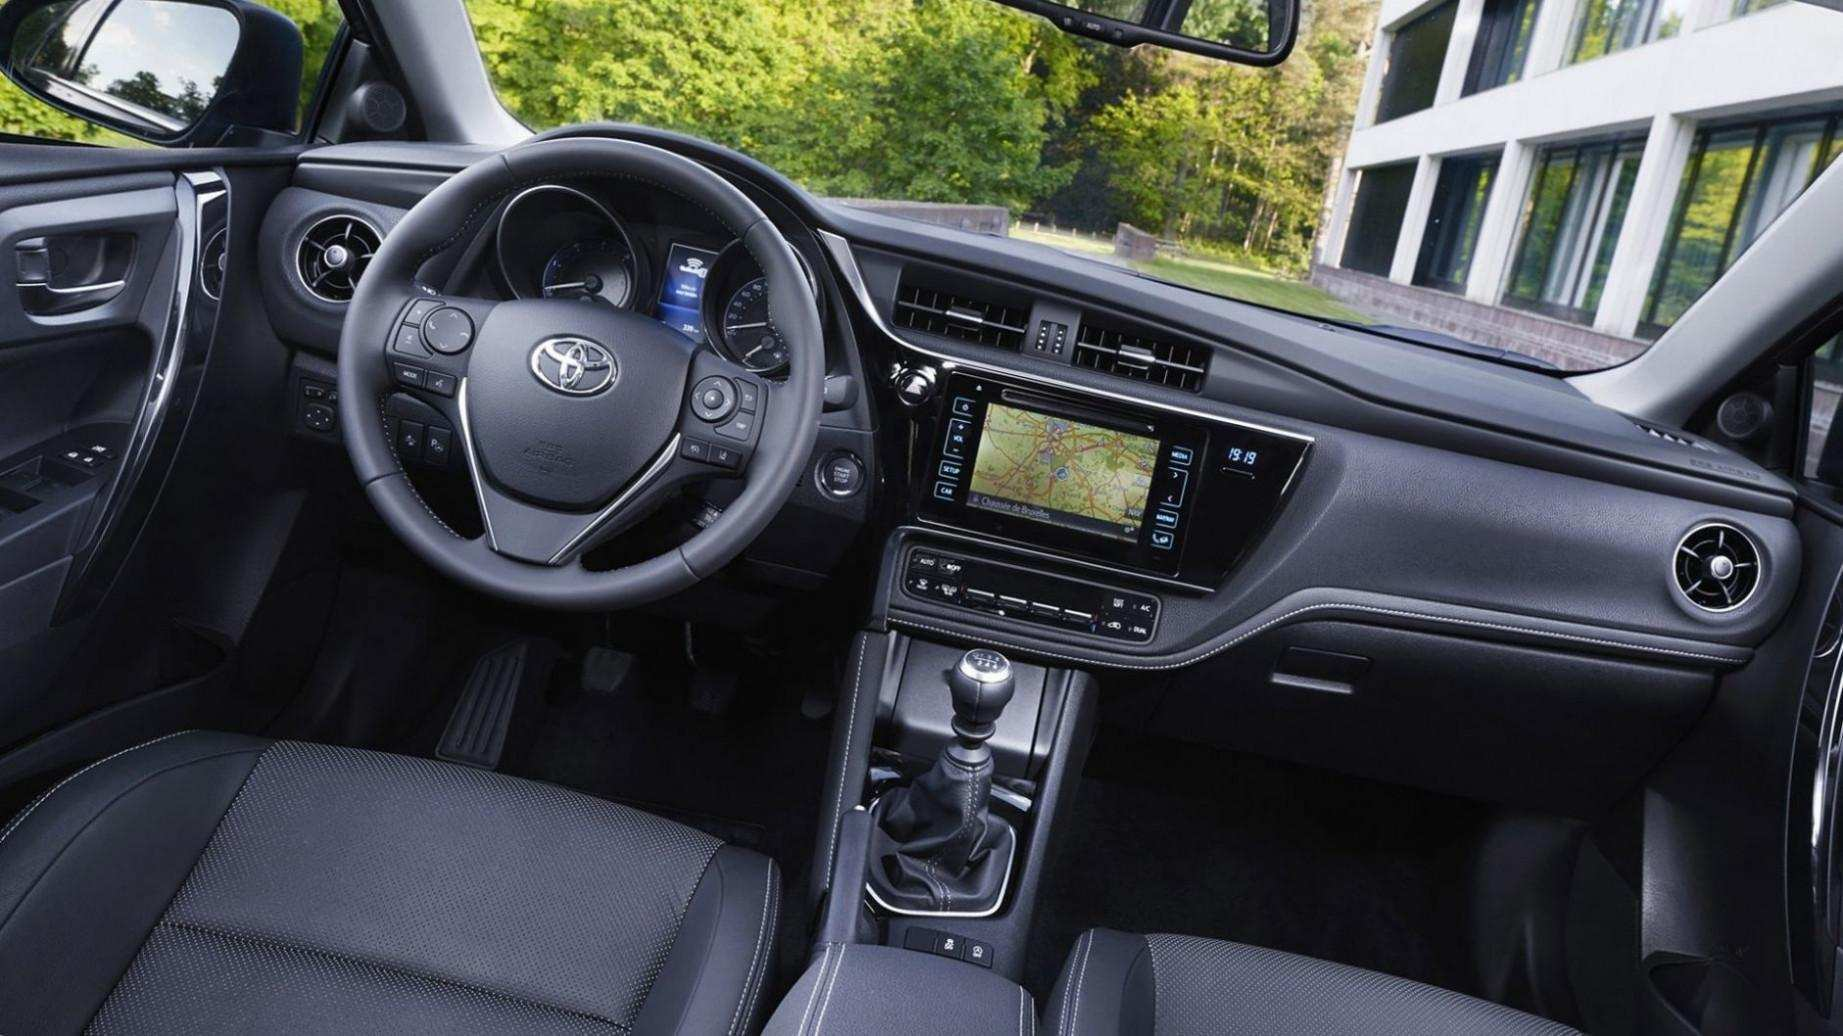 34 The Best Toyota Yaris 2019 Interior Price And Release Date